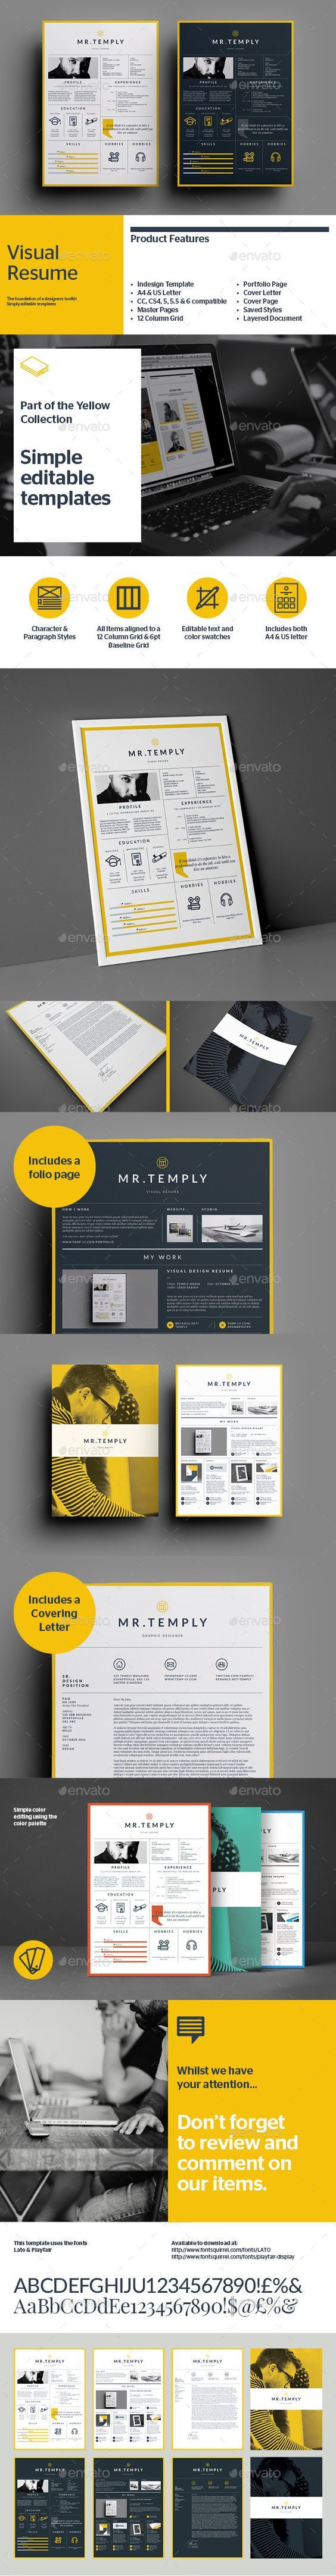 351 best . creative cv . images on Pinterest | Creative resume ...